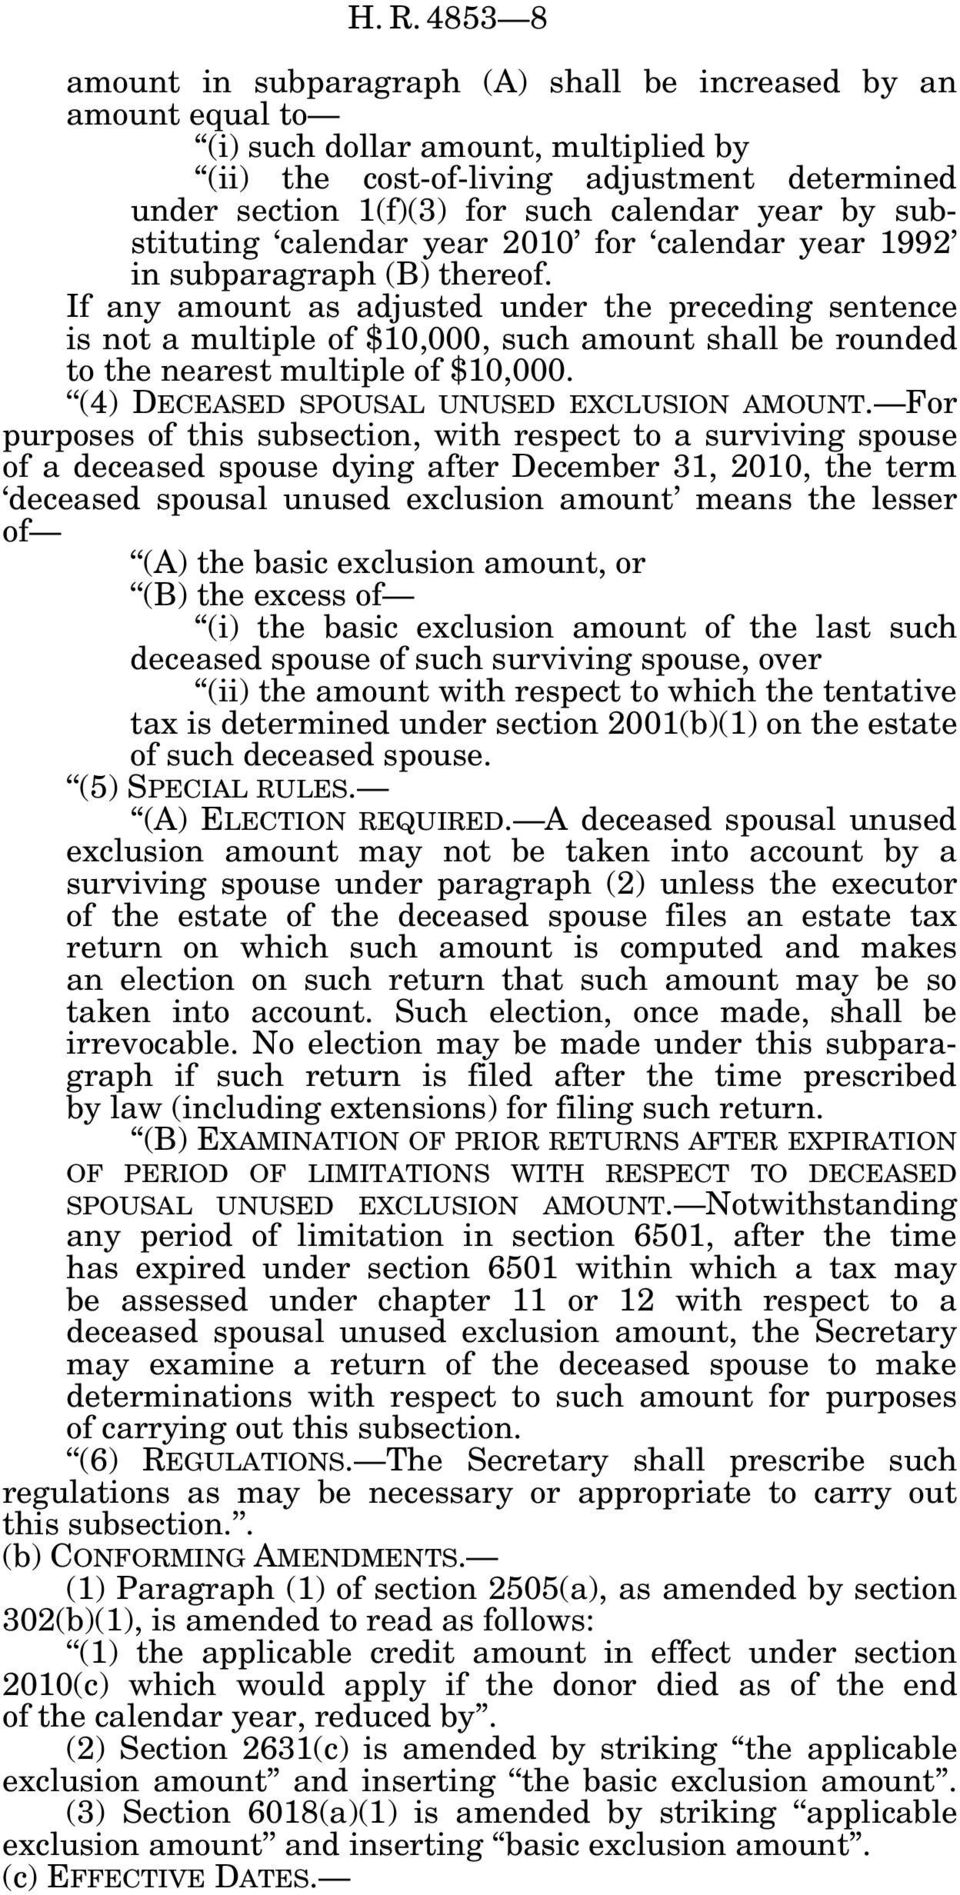 If any amount as adjusted under the preceding sentence is not a multiple of $10,000, such amount shall be rounded to the nearest multiple of $10,000. (4) DECEASED SPOUSAL UNUSED EXCLUSION AMOUNT.